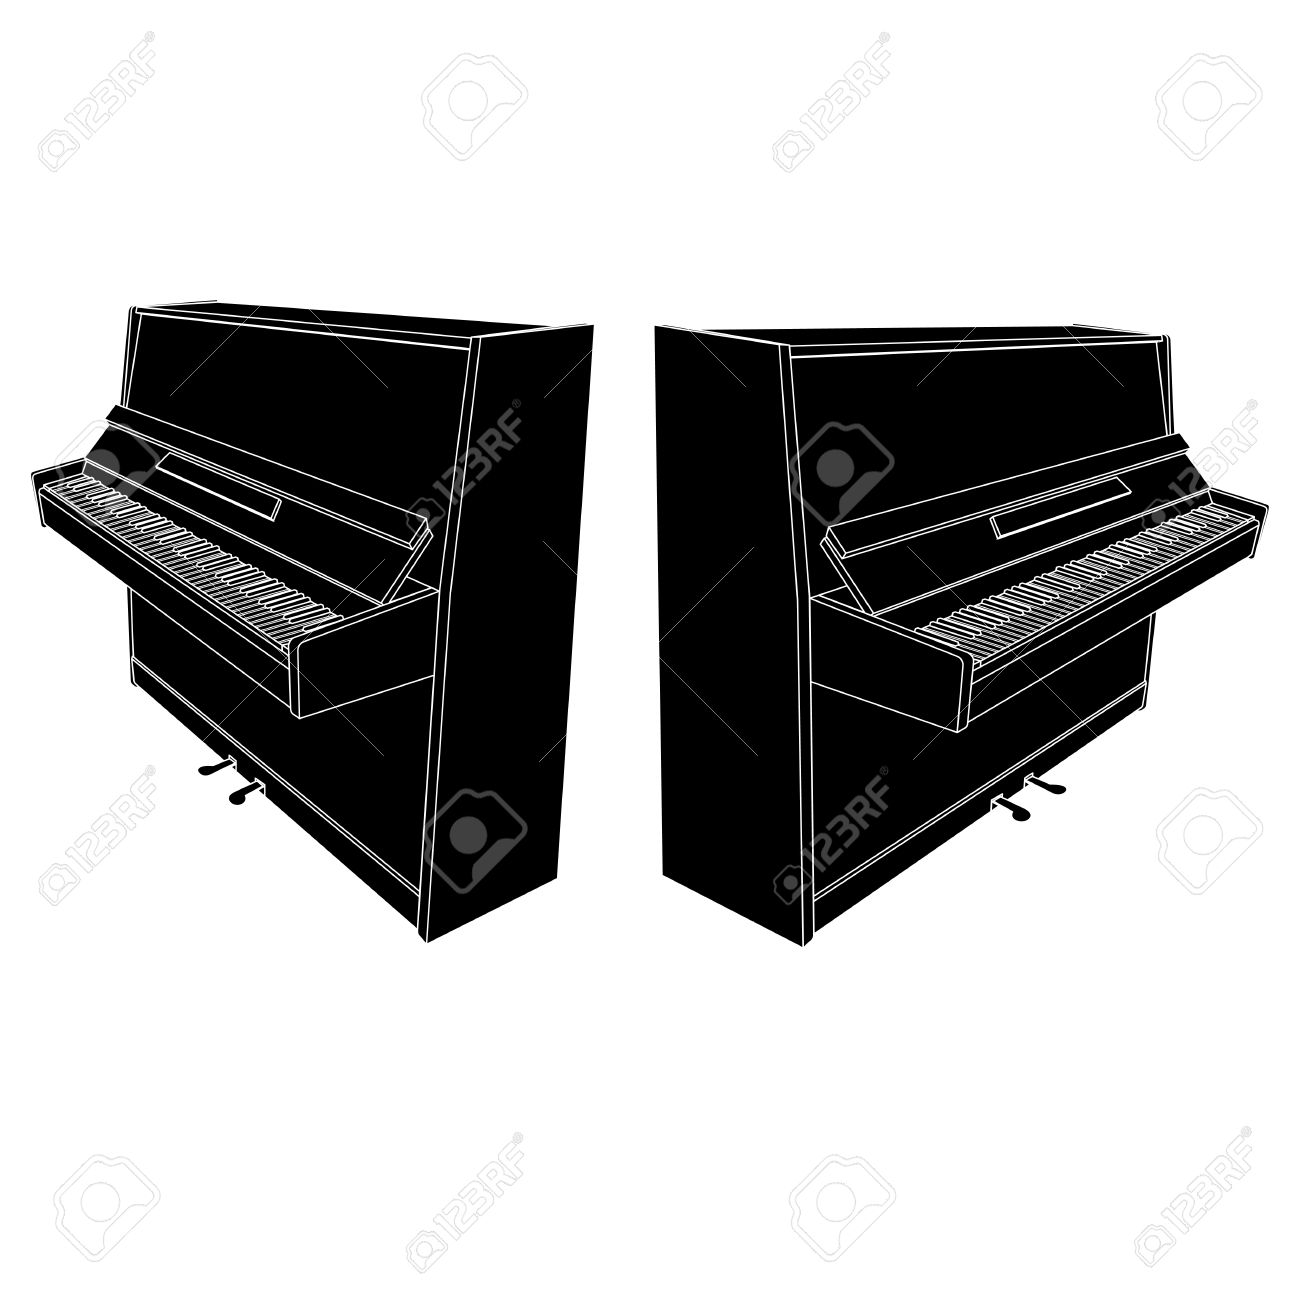 Open Piano Silhouette With Keyboard, Pedals And Desk Royalty Free.